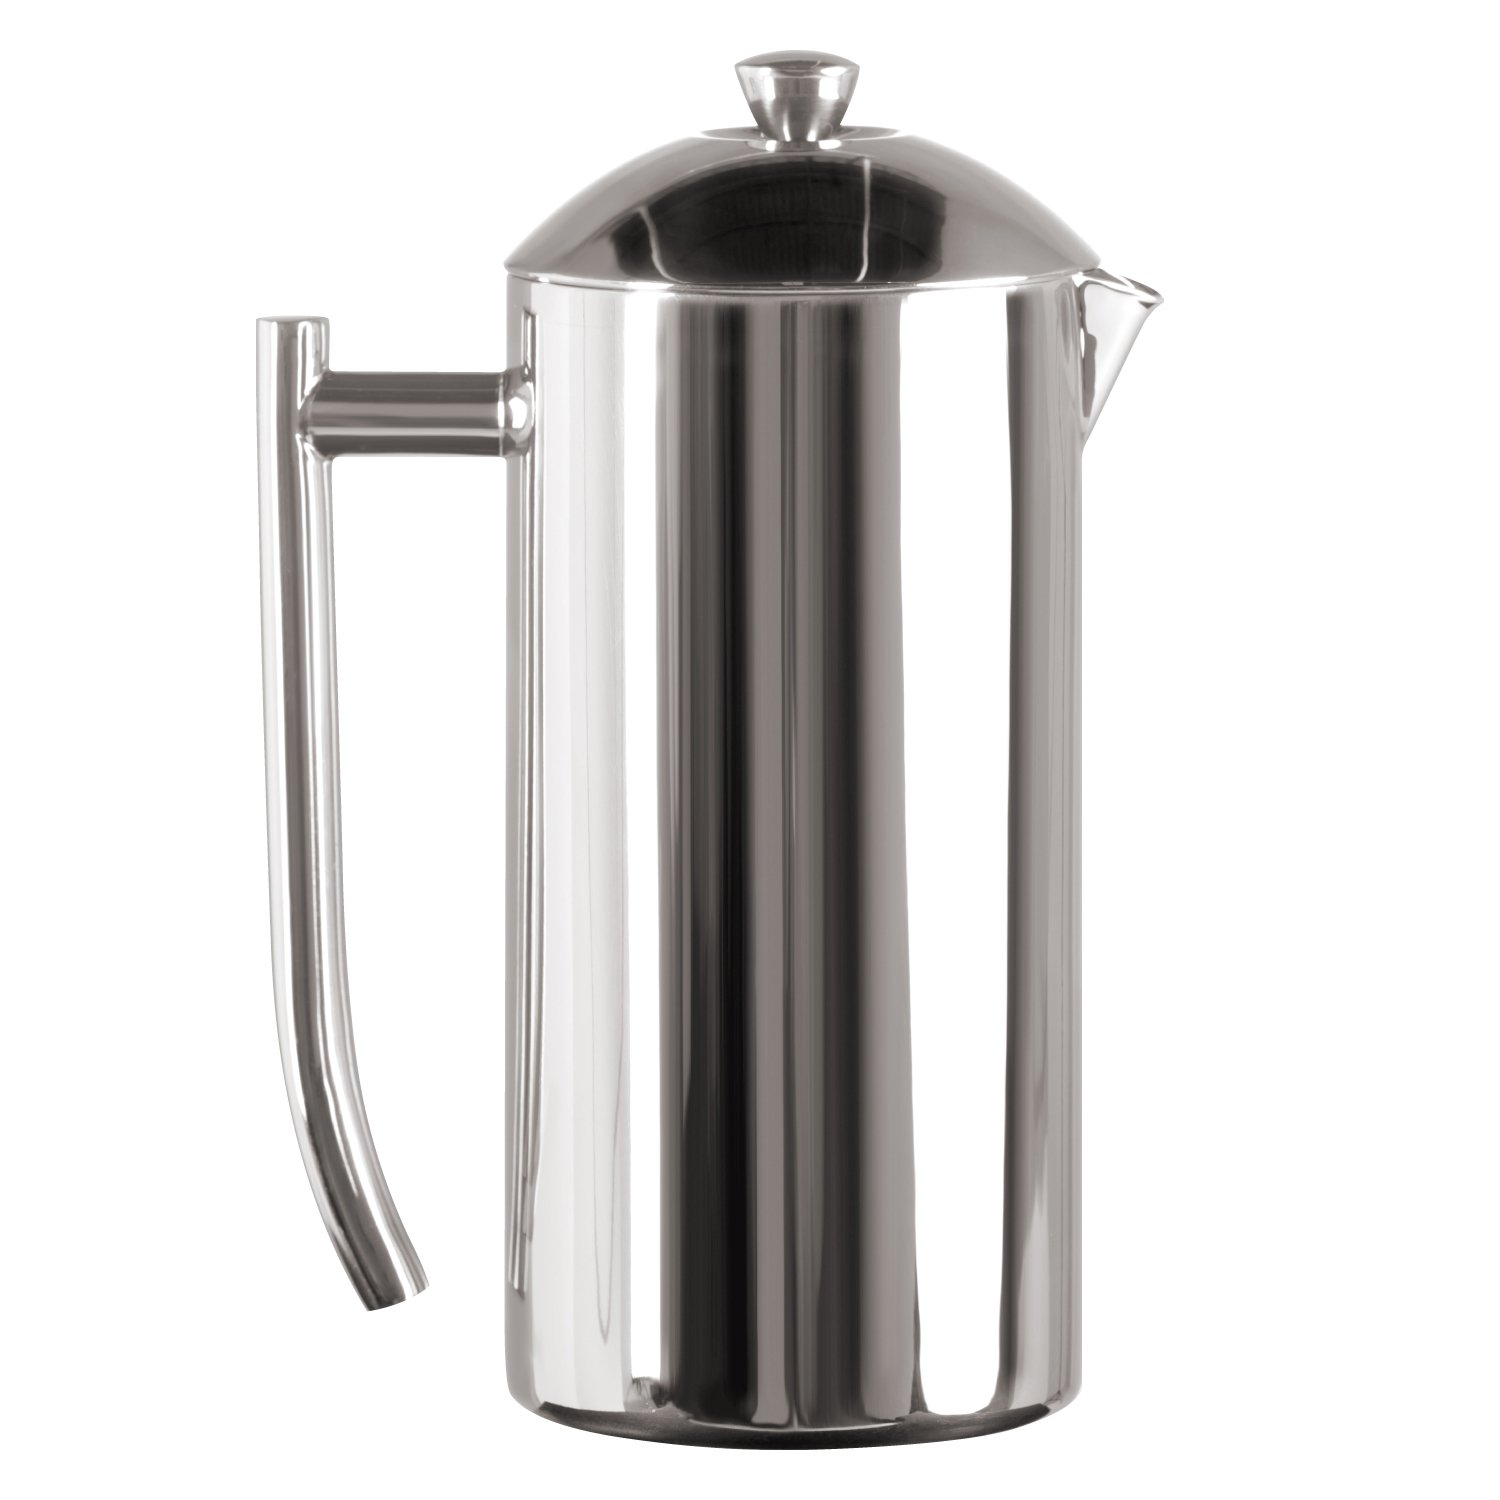 Frieling Double Wall Stainless Steel French Press Coffee Maker w/ Dual Screen (36-oz)